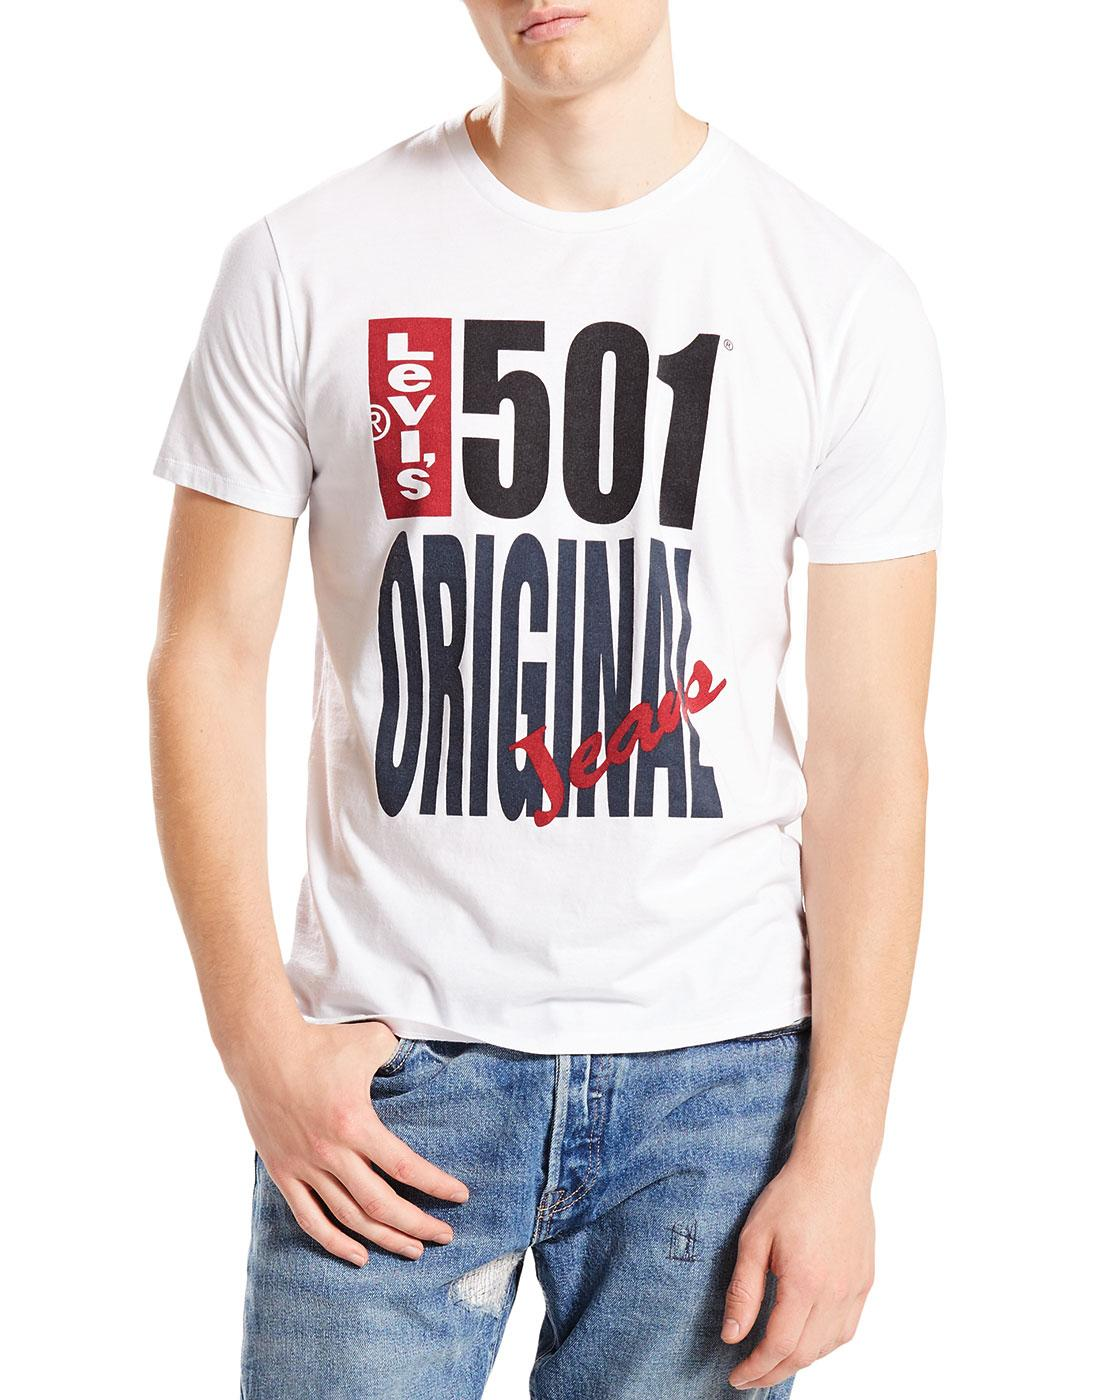 LEVI'S Retro 1980s 501 Graphic Print Crew T-Shirt